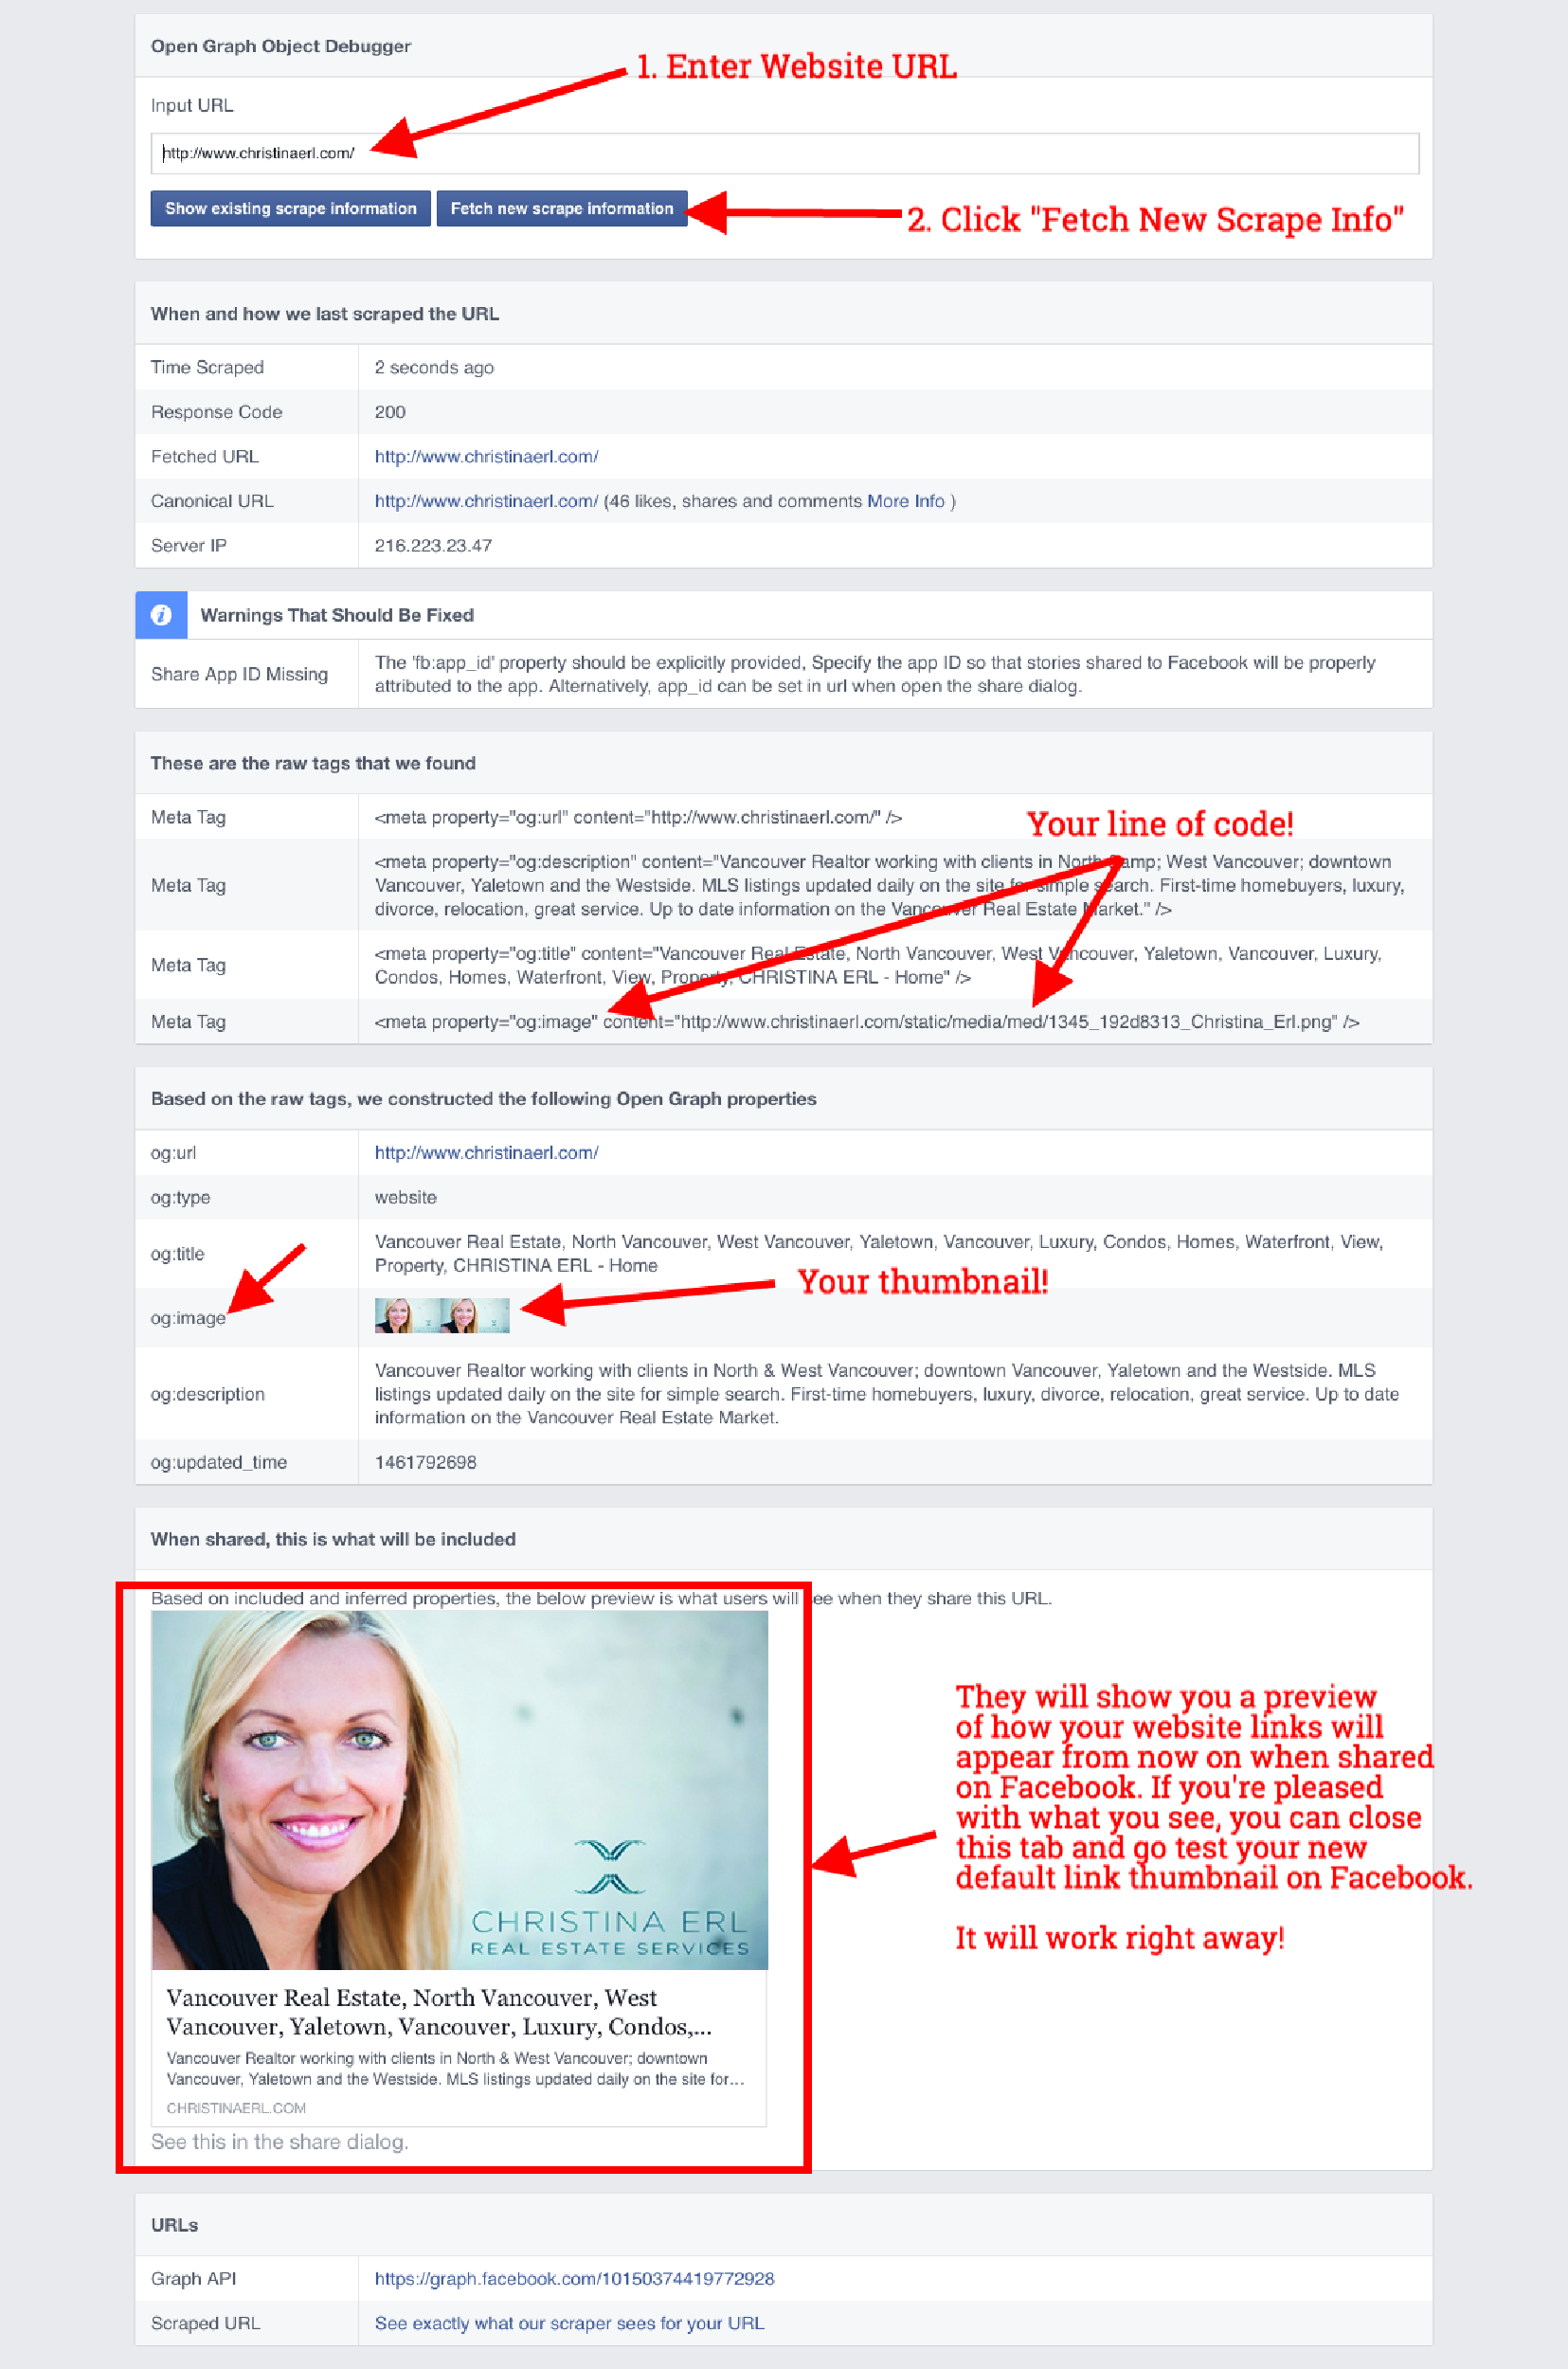 Changing Your Default Website Link Thumbnail (For Facebook